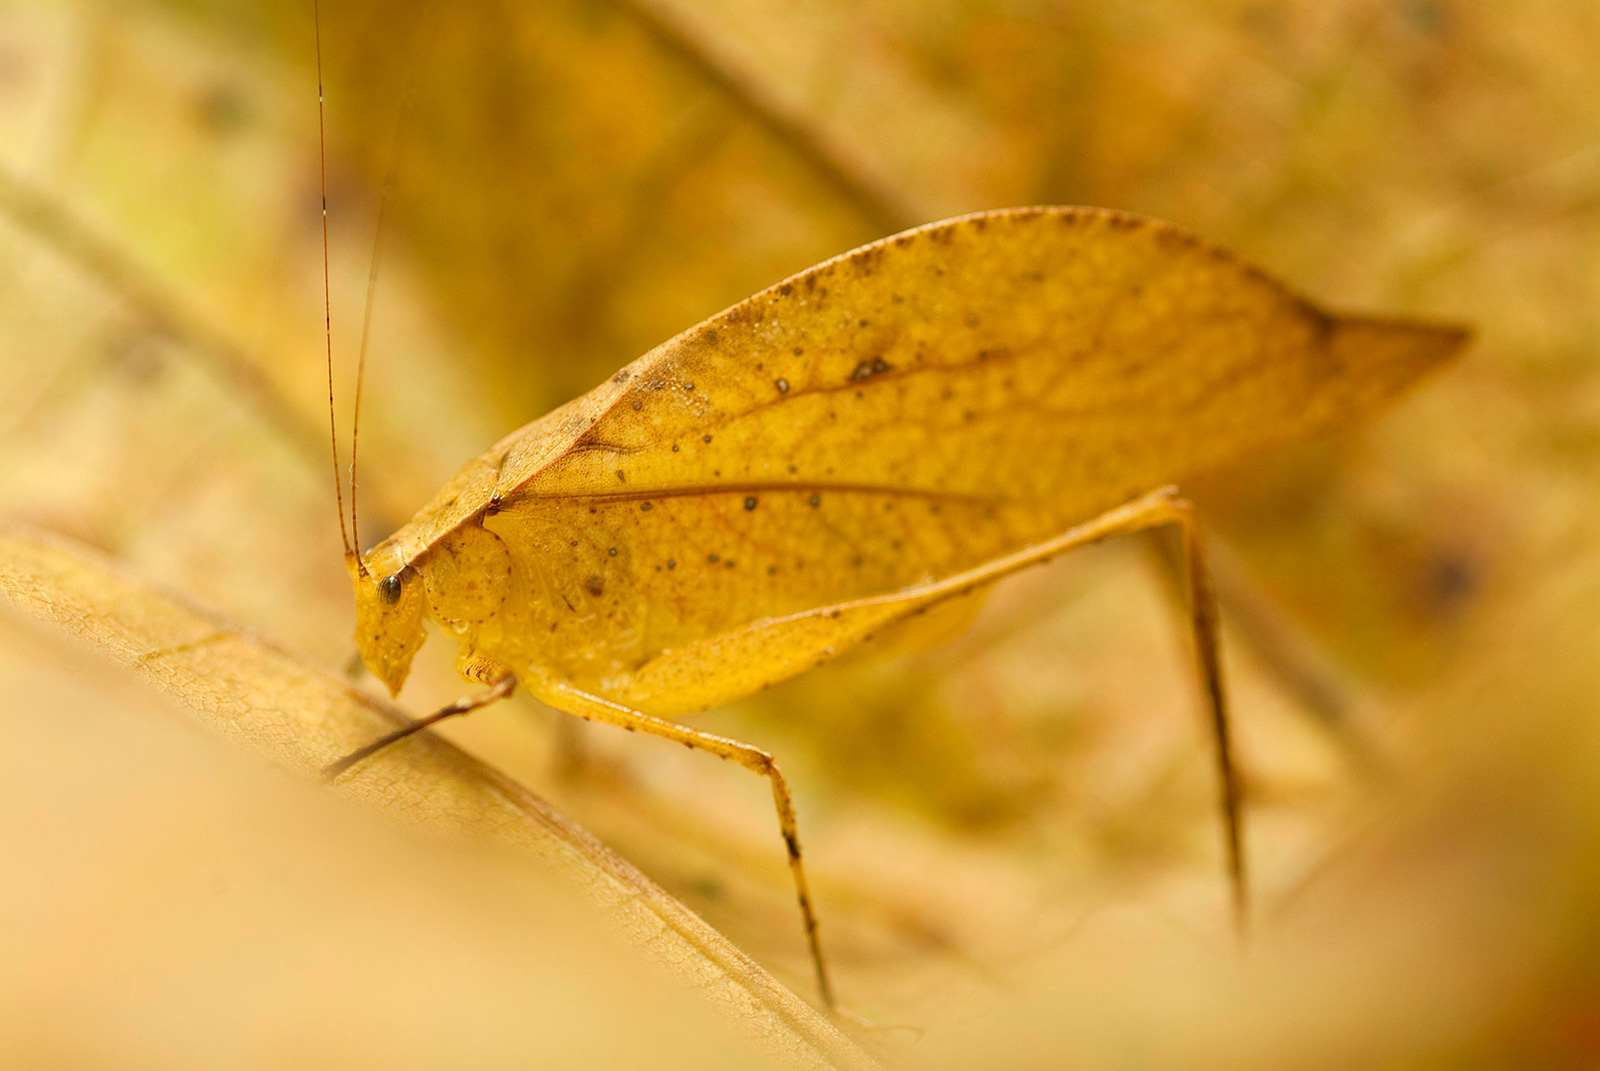 A well-camouflaged insect rests on a leaf